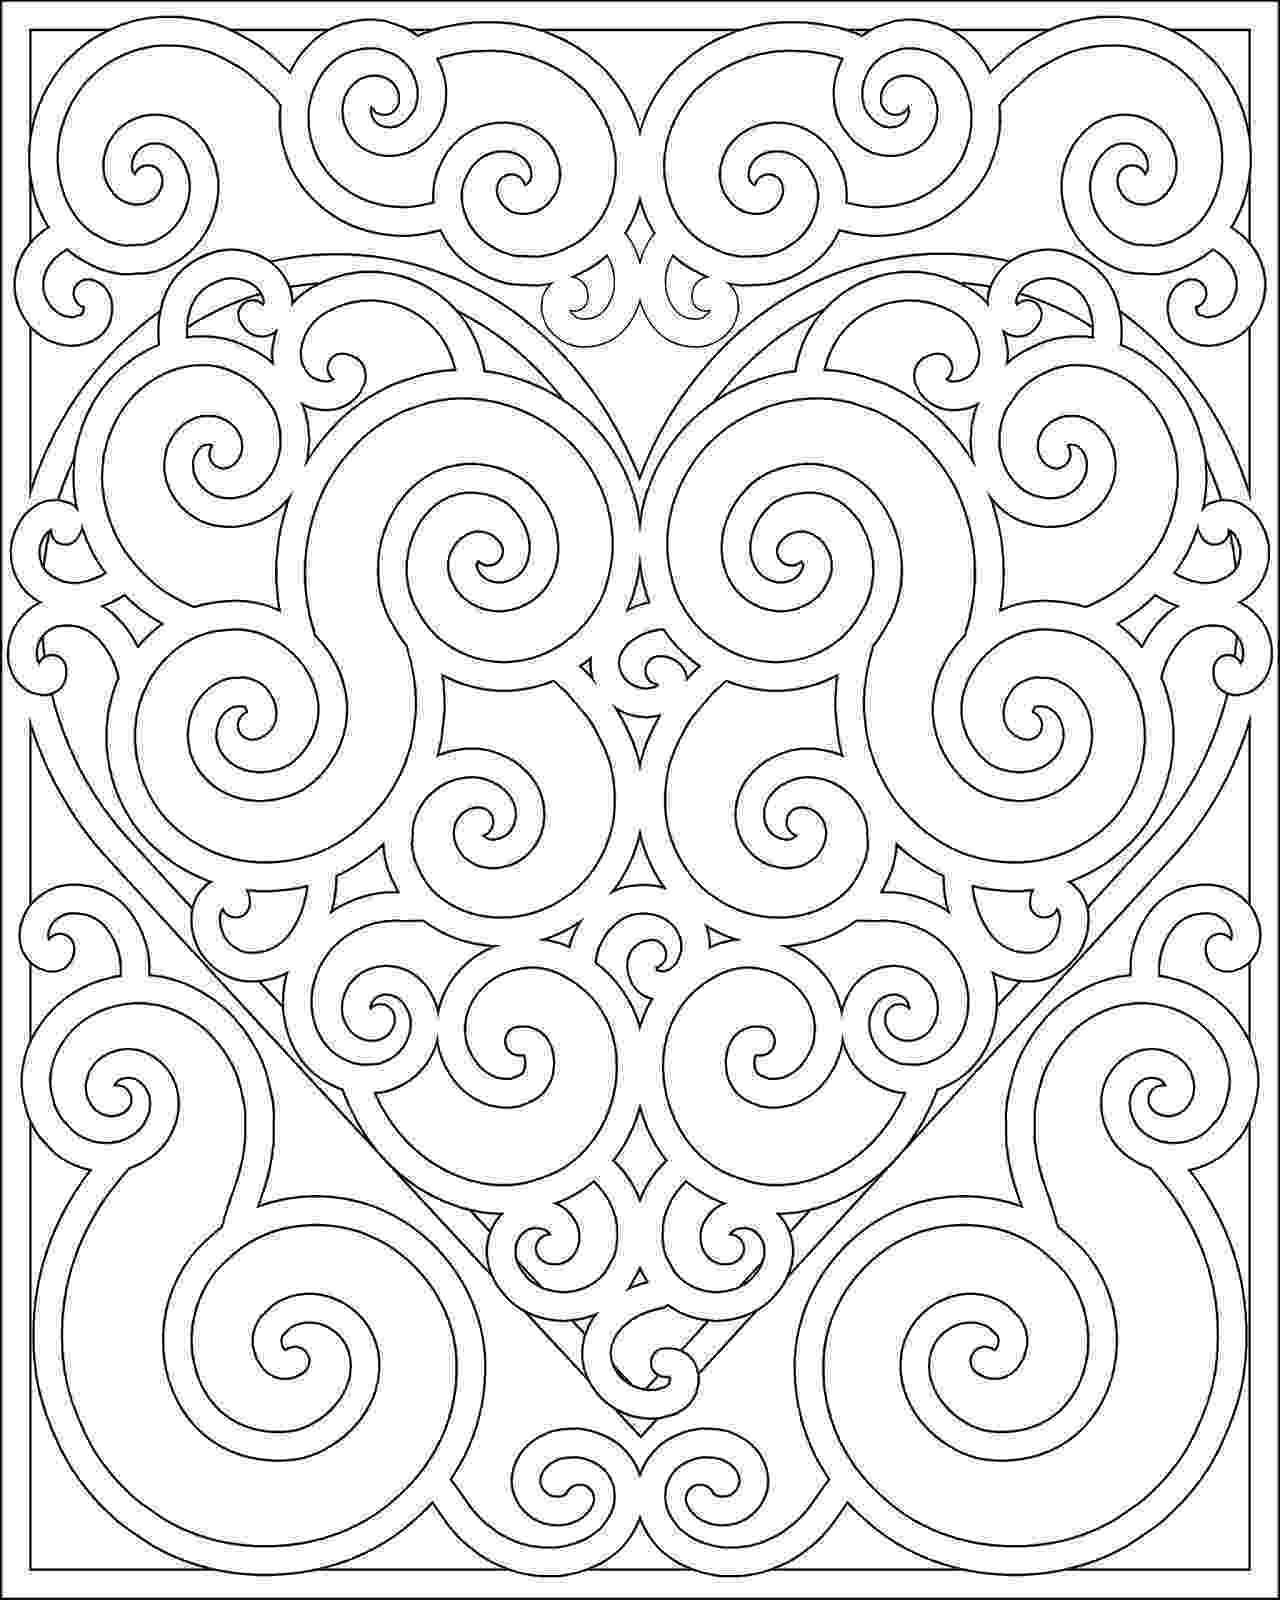 printable coloring pages pattern 2019 snowflake to color coloring pages to print cute pattern printable coloring pages